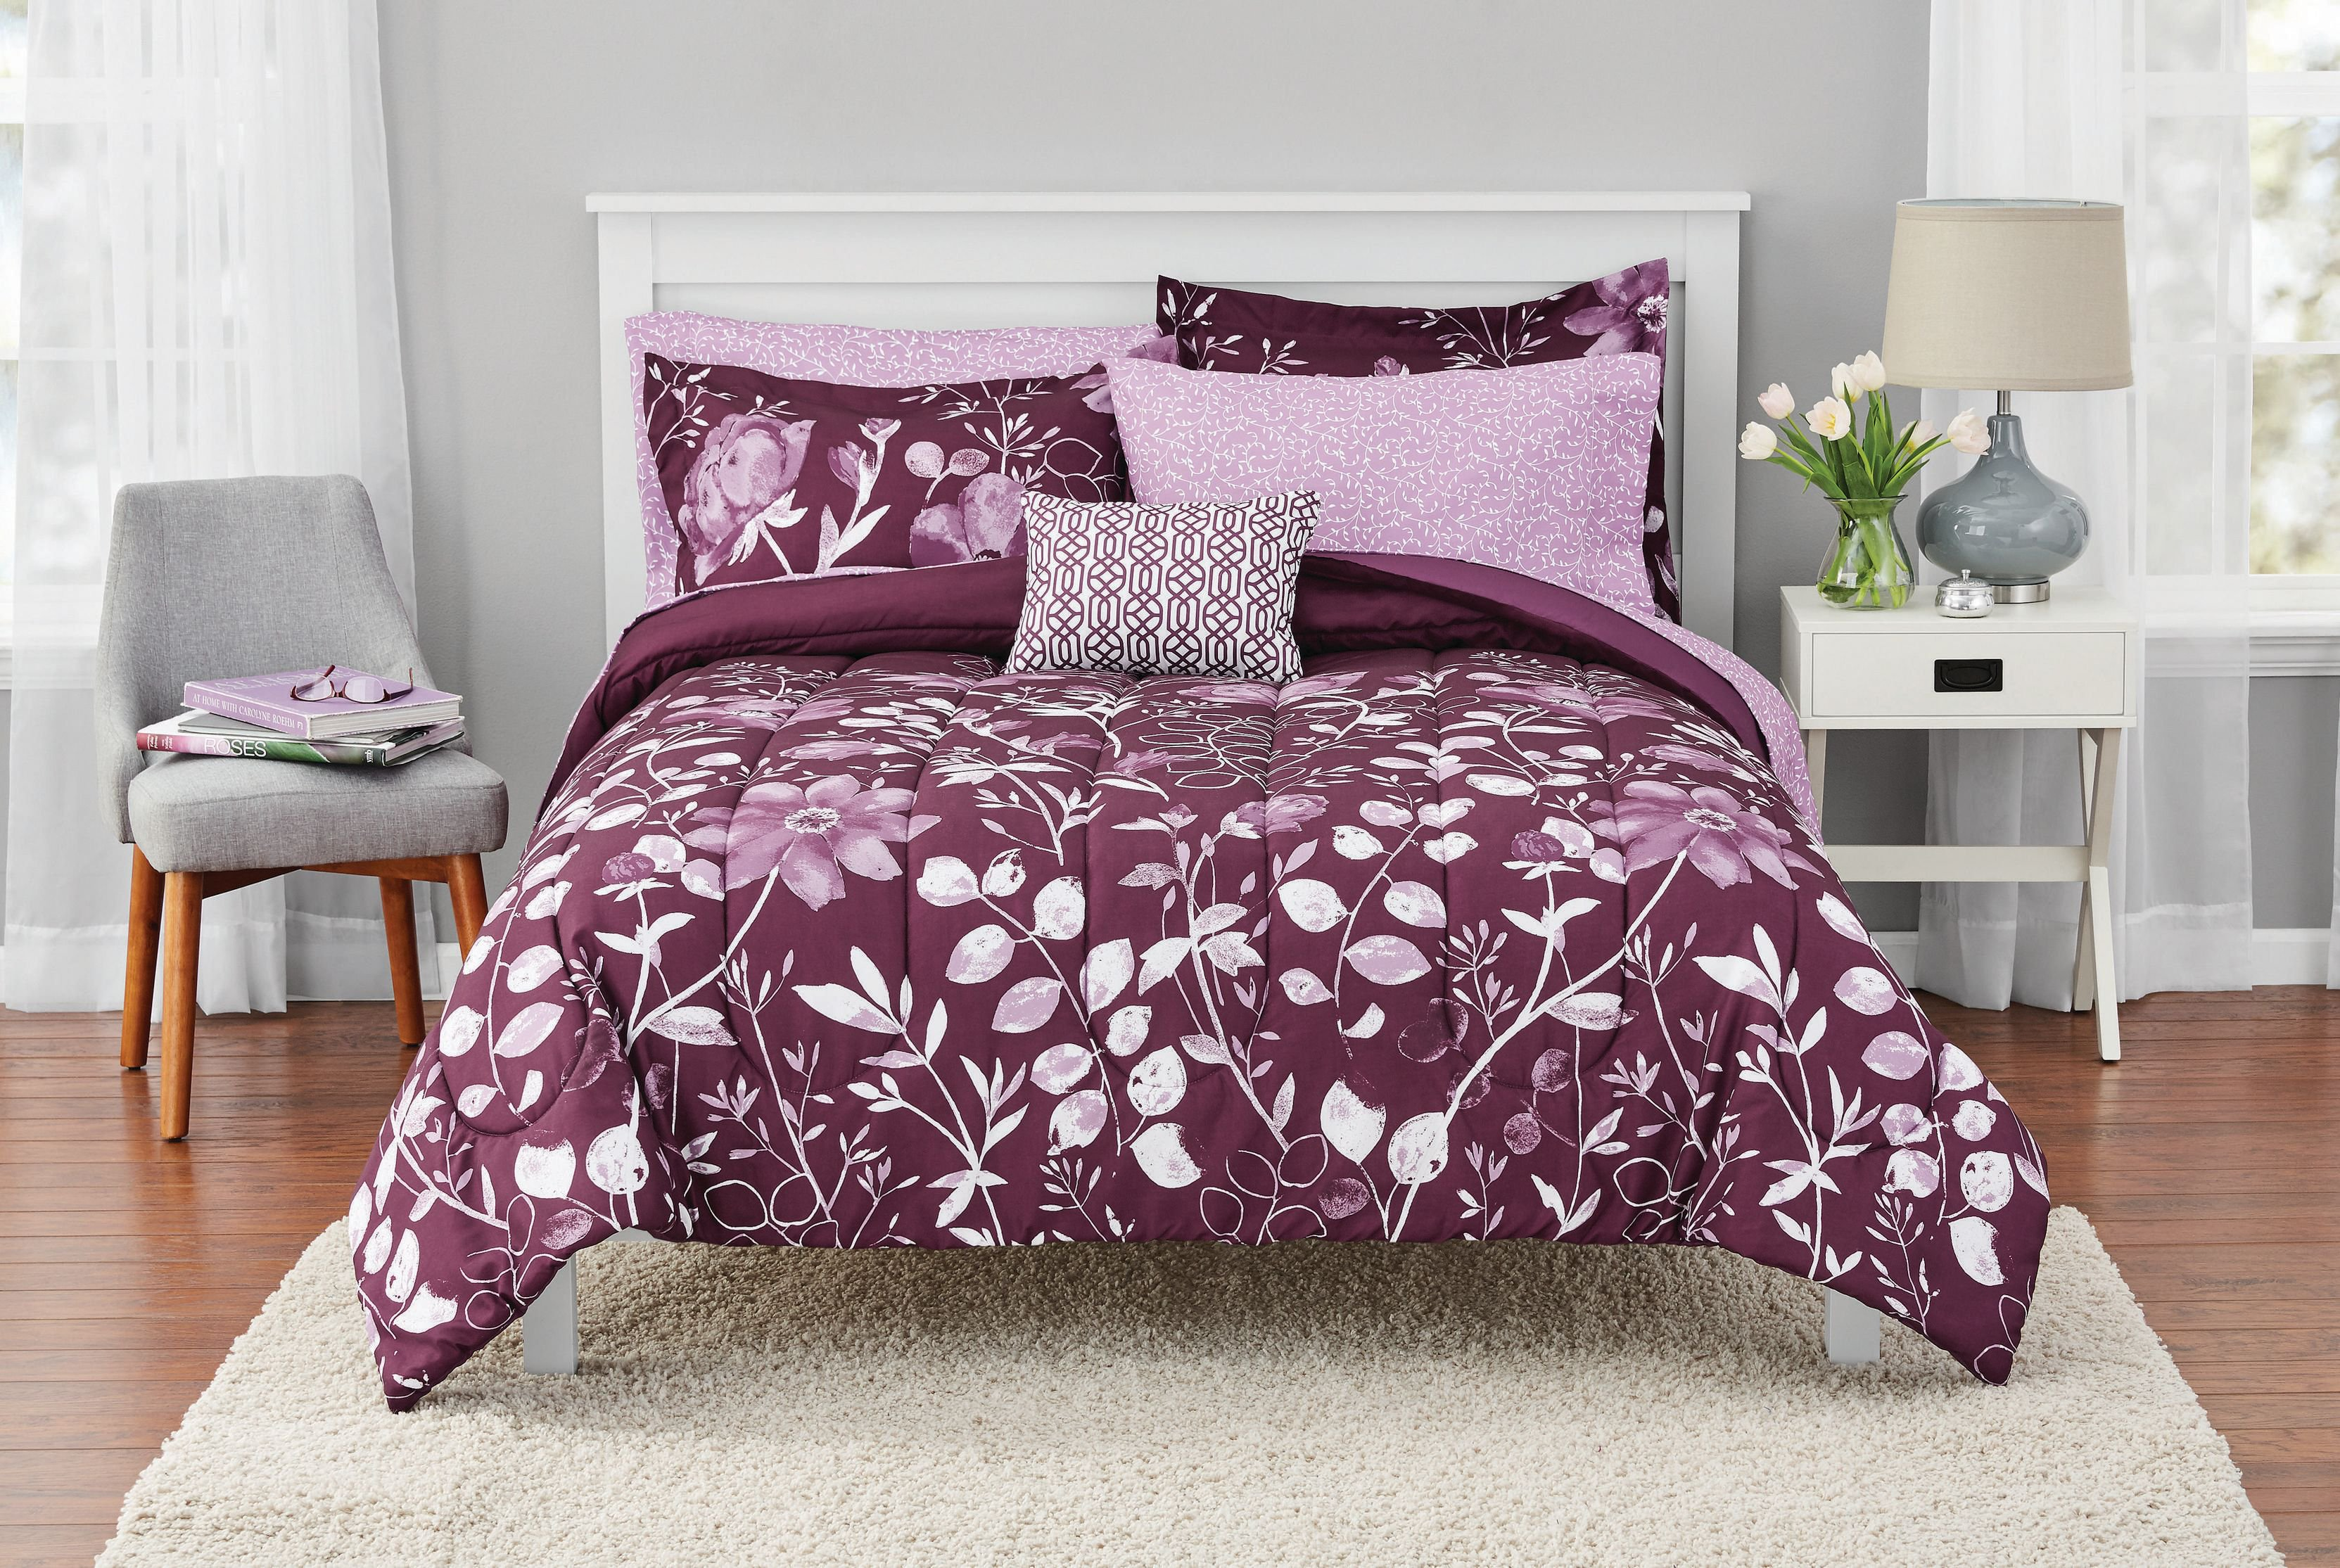 Kamala Bed in a Bag Coordinating Bedding Set by Mainstays